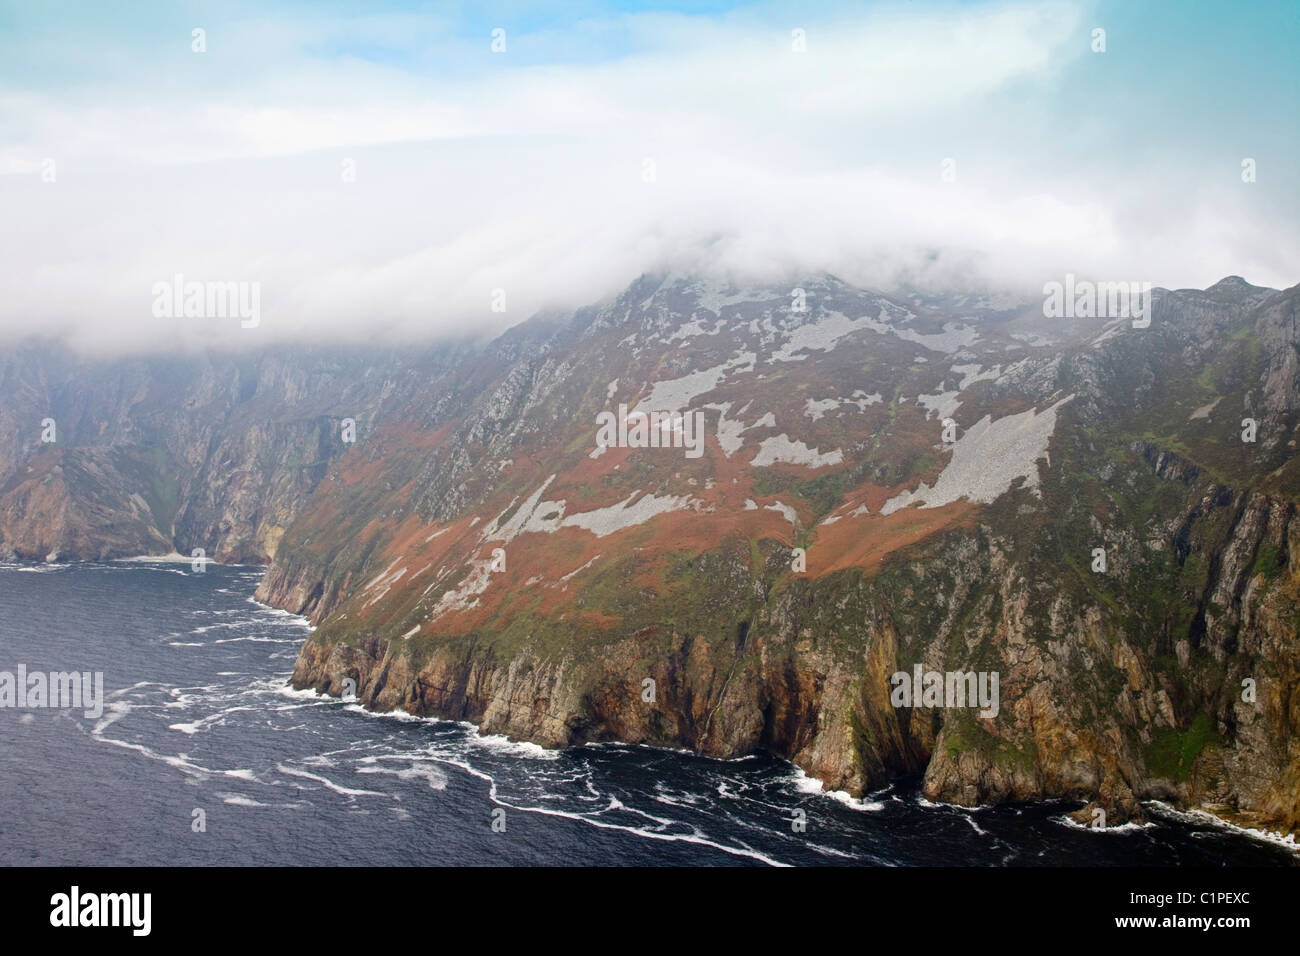 Republic of Ireland, County Donegal, Slieve League, low cloud over mountainous cliffs - Stock Image